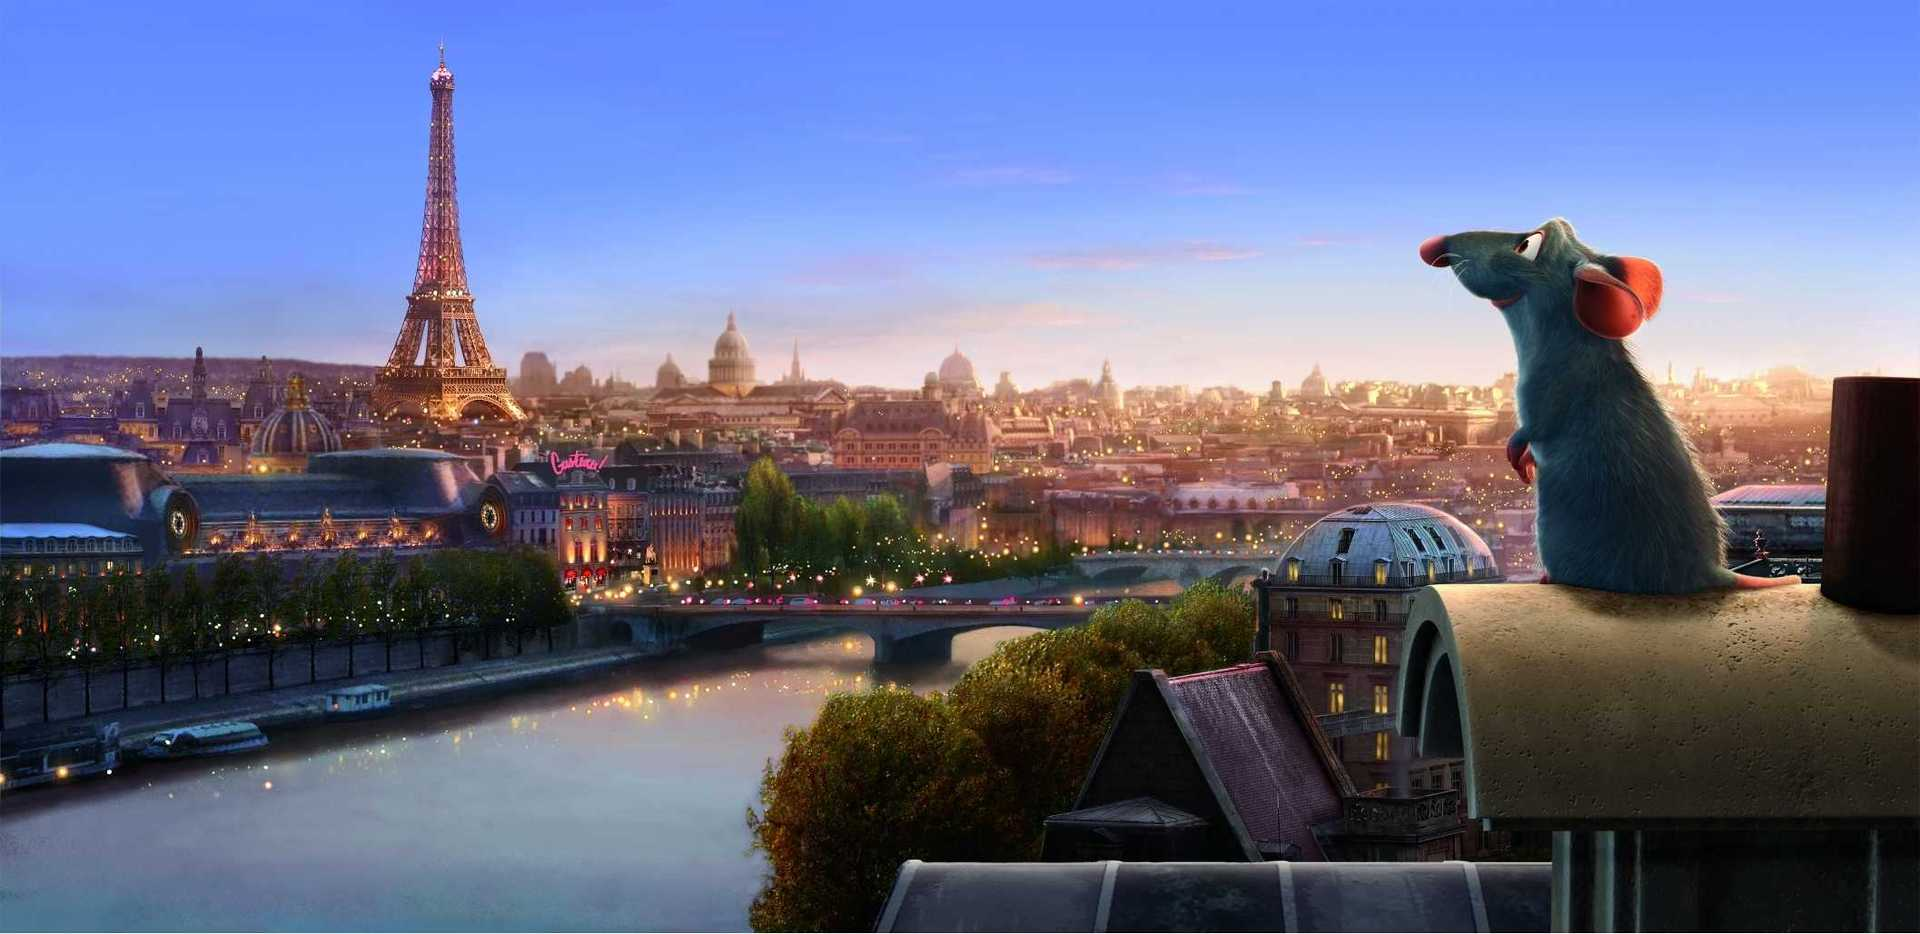 Ratatouille - Disney Photo (106762) - Fanpop